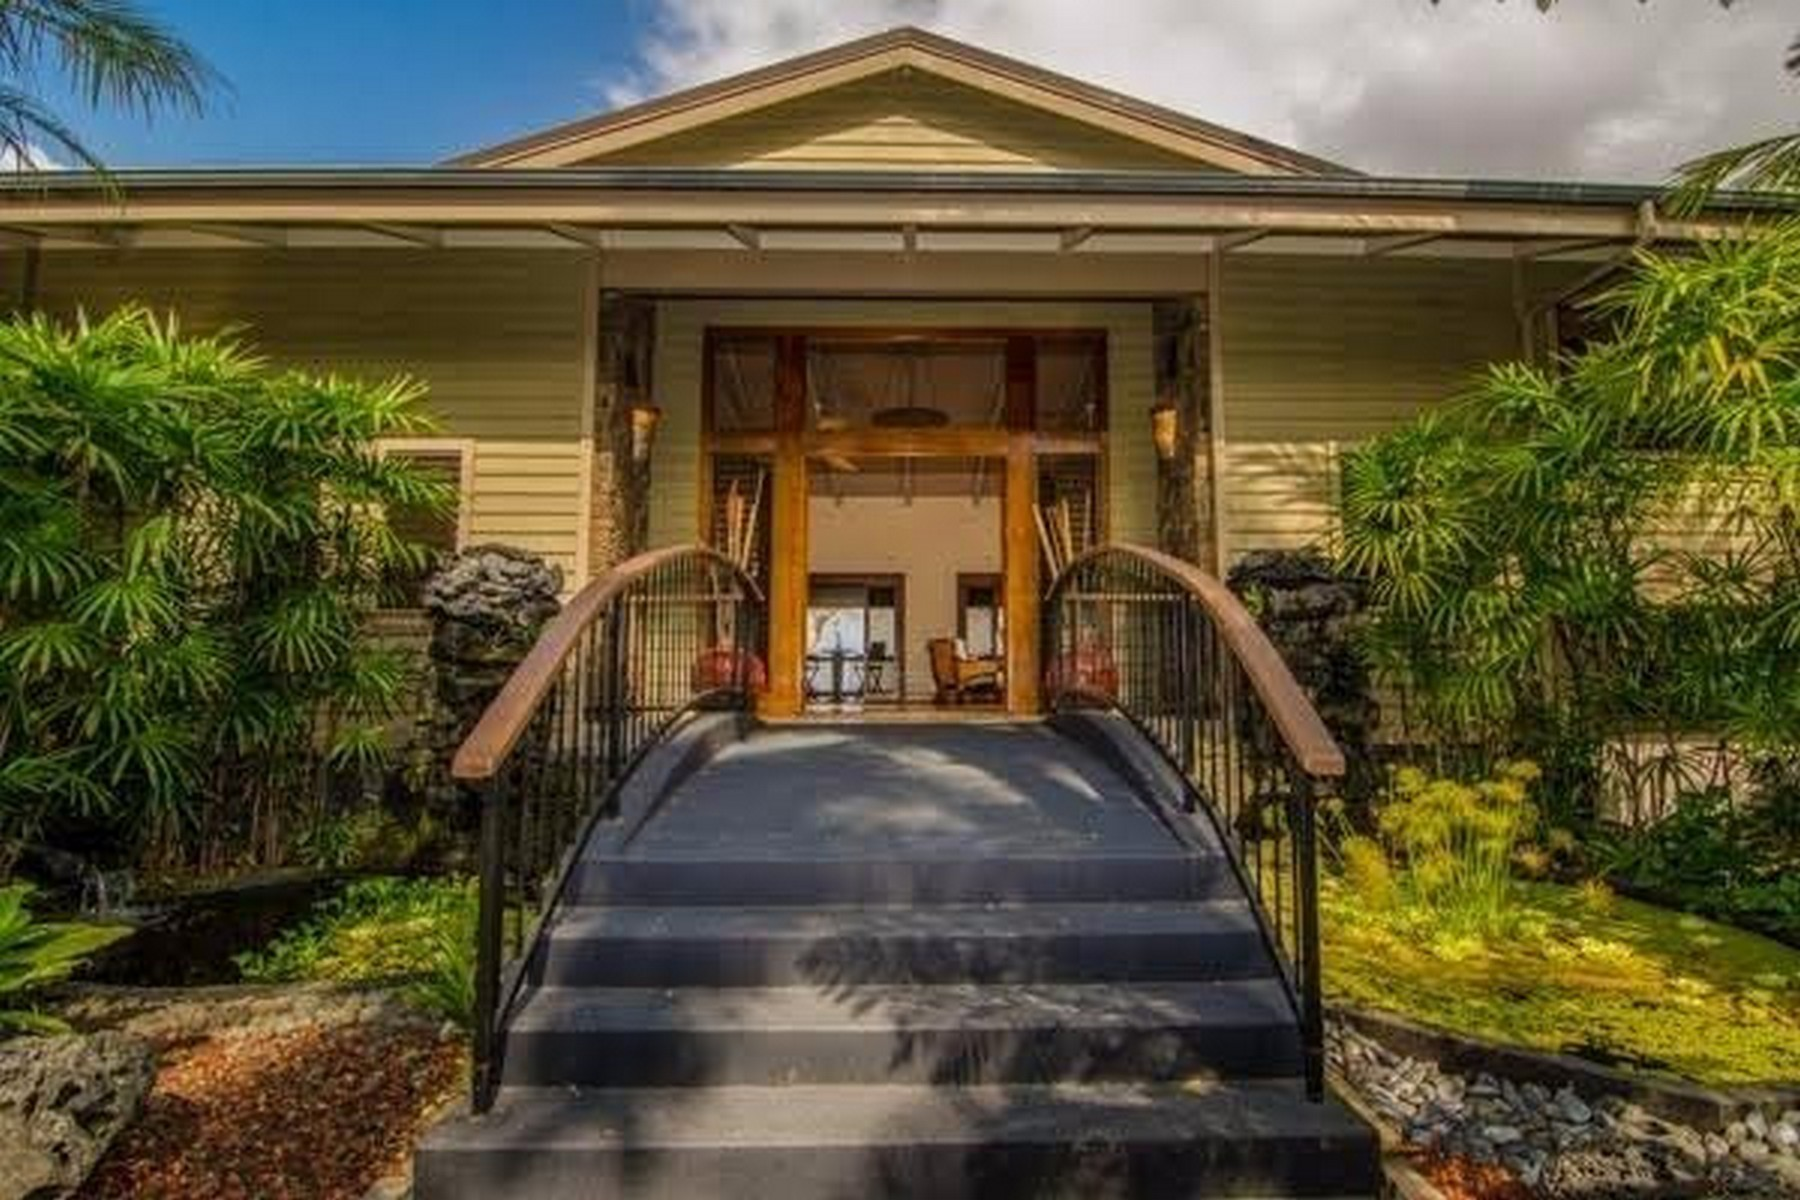 Single Family Home for Sale at Kula Kai 75-661 Kula kai Pl Kailua-Kona, Hawaii 96740 United States